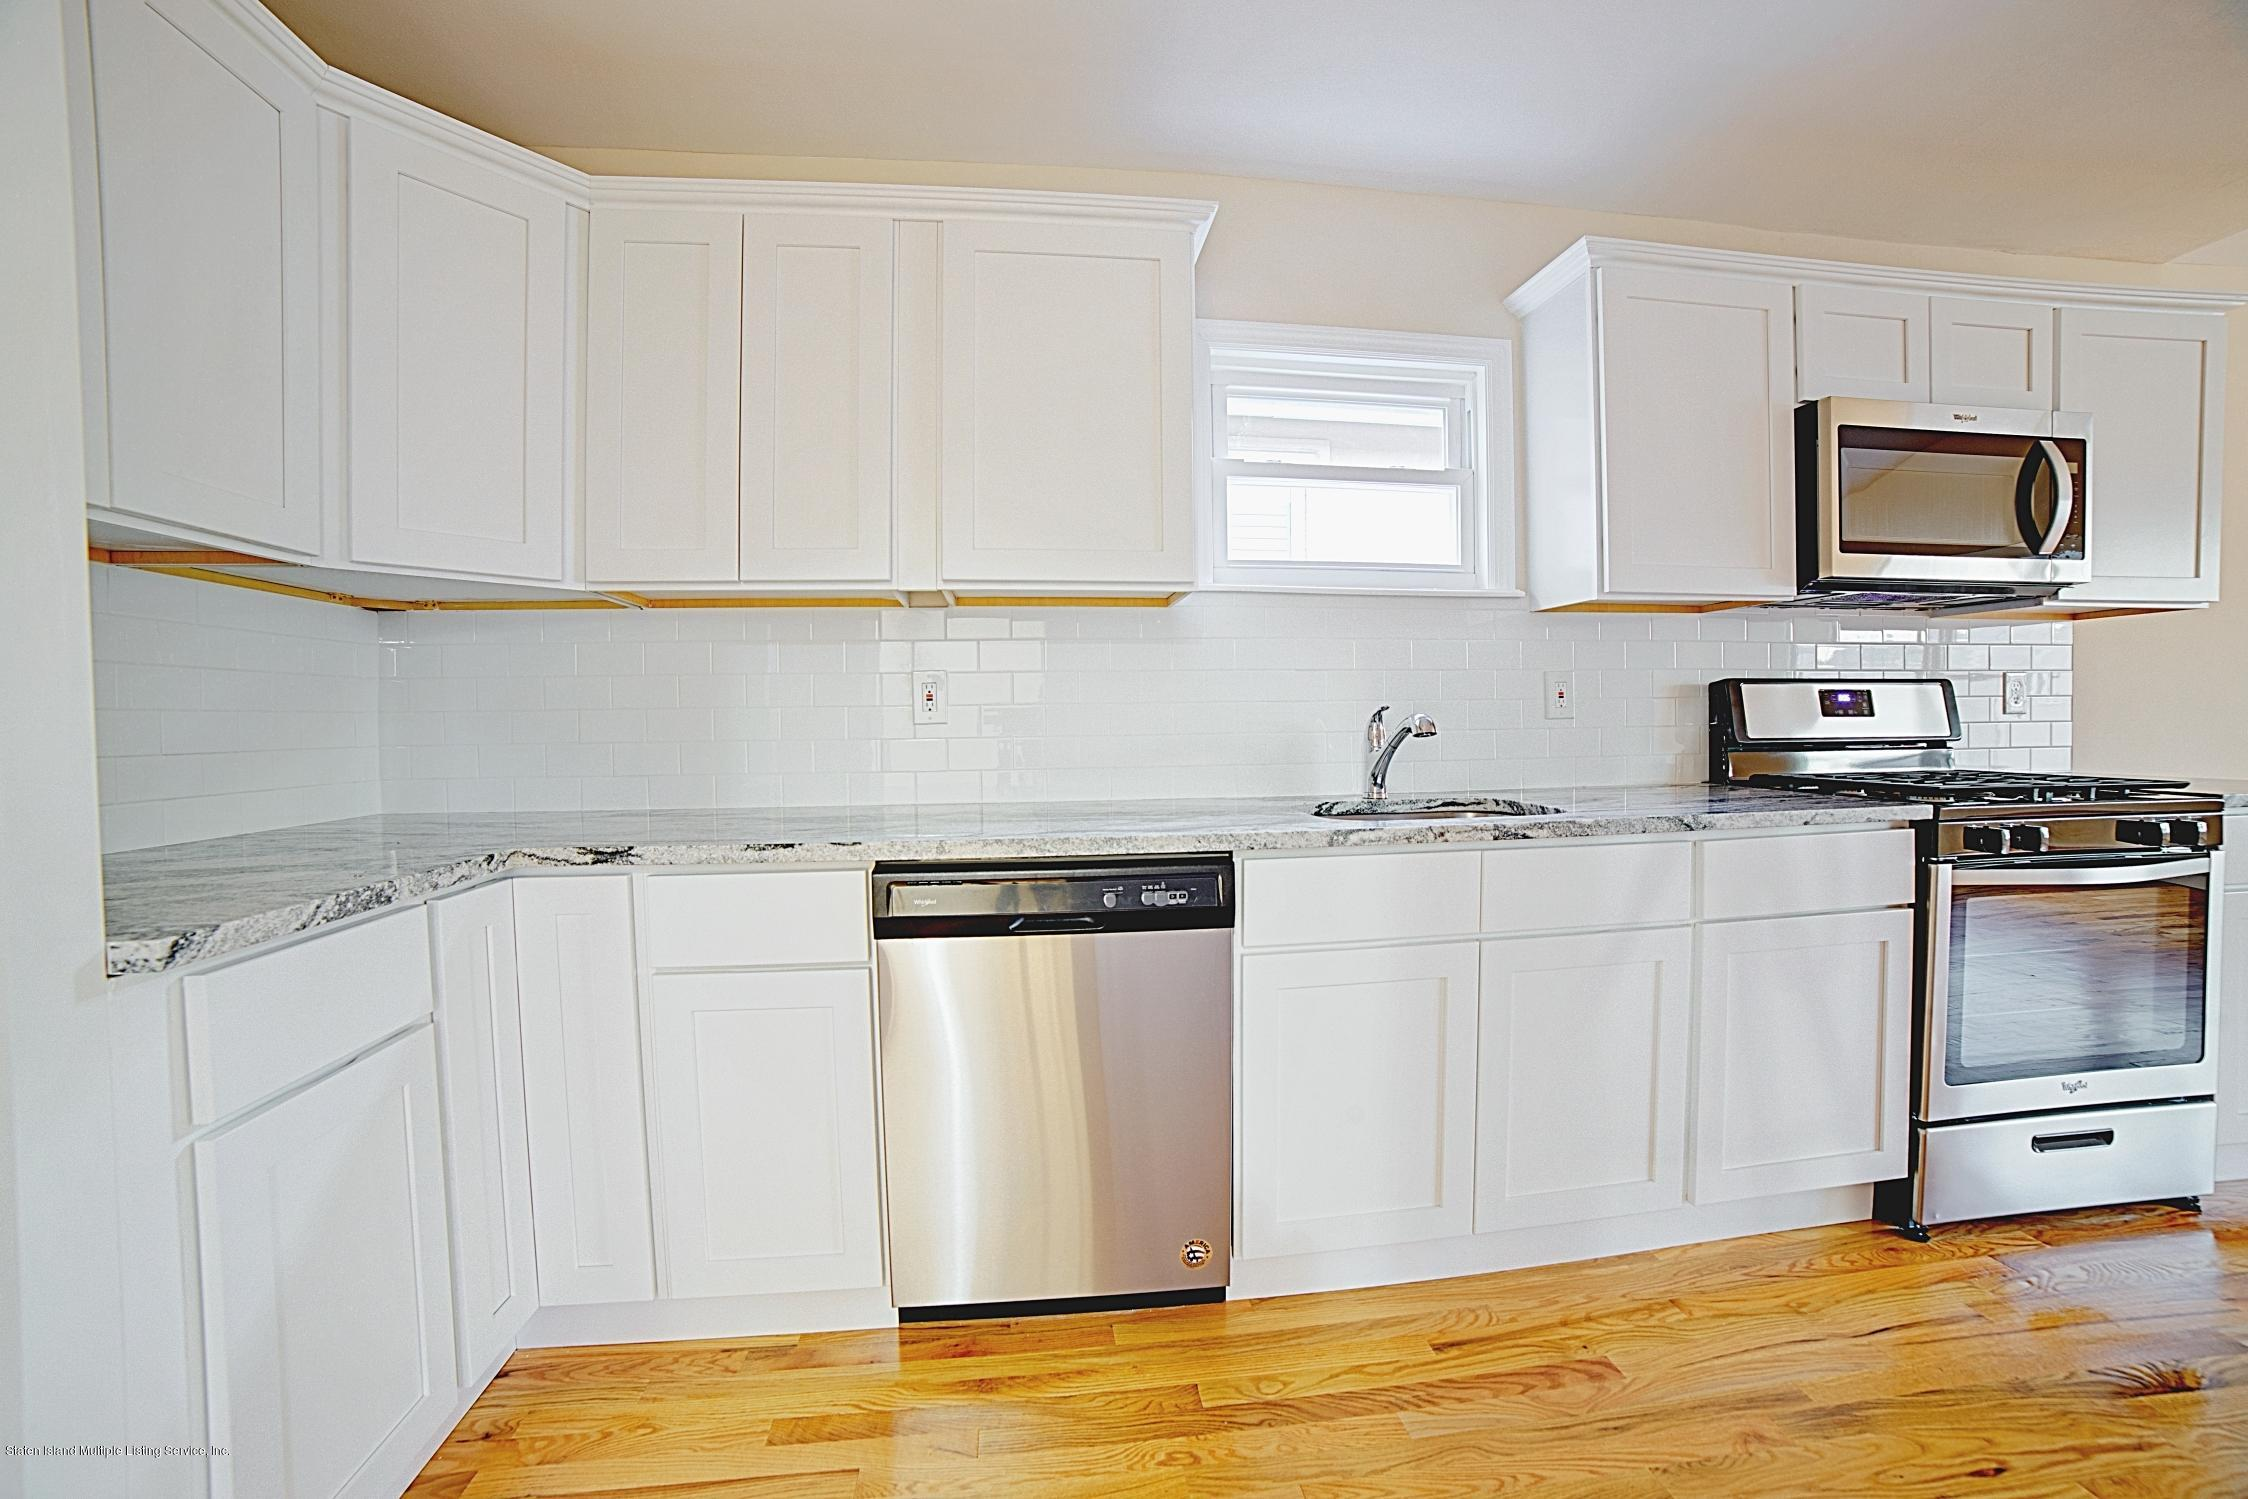 Single Family - Detached 87 Manchester Drive  Staten Island, NY 10312, MLS-1135150-9